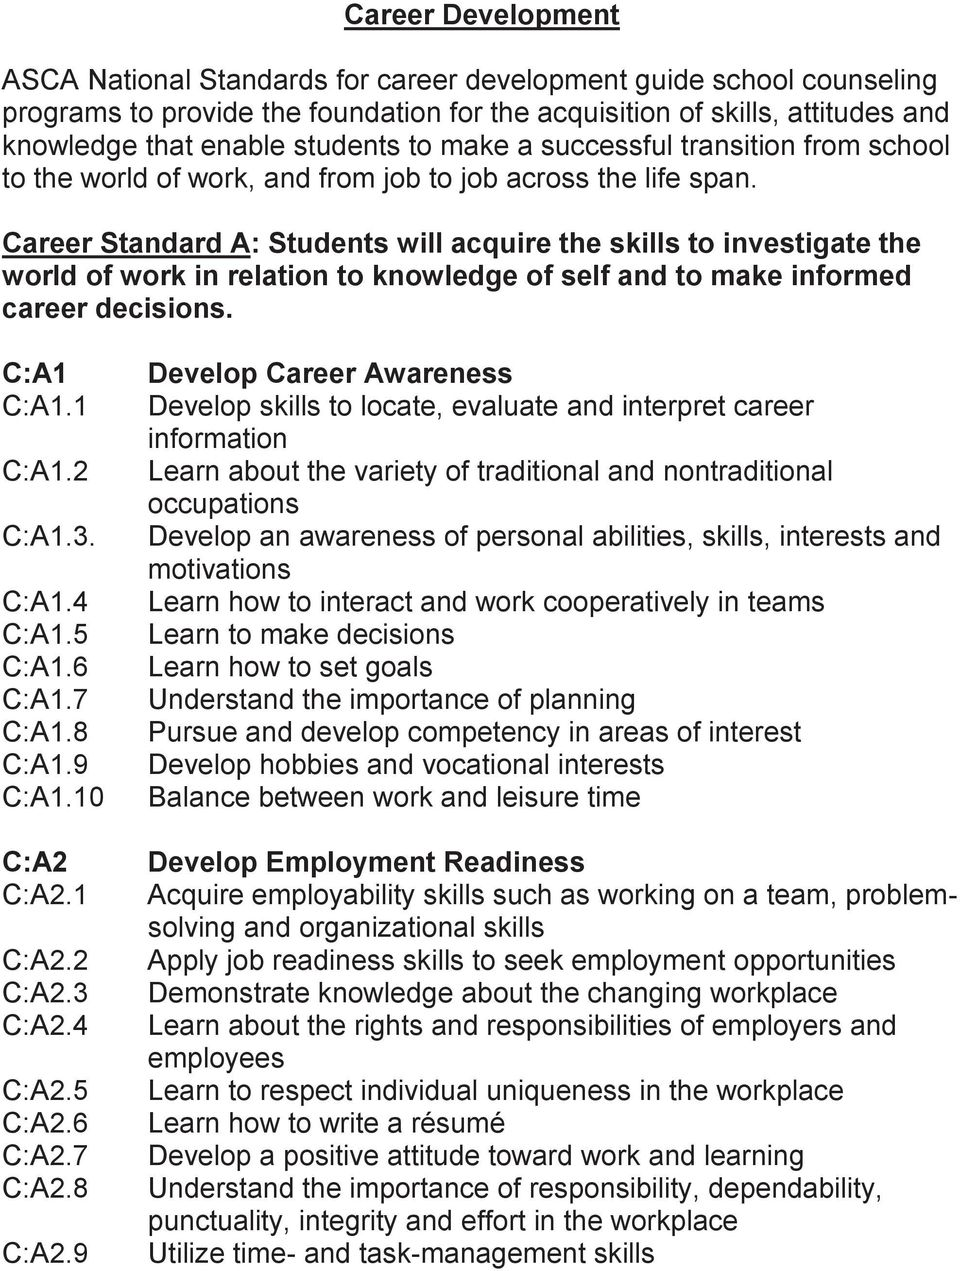 Career Standard A: Students will acquire the skills to investigate the world of work in relation to knowledge of self and to make informed career decisions. C:A1 C:A1.1 C:A1.2 C:A1.3. C:A1.4 C:A1.